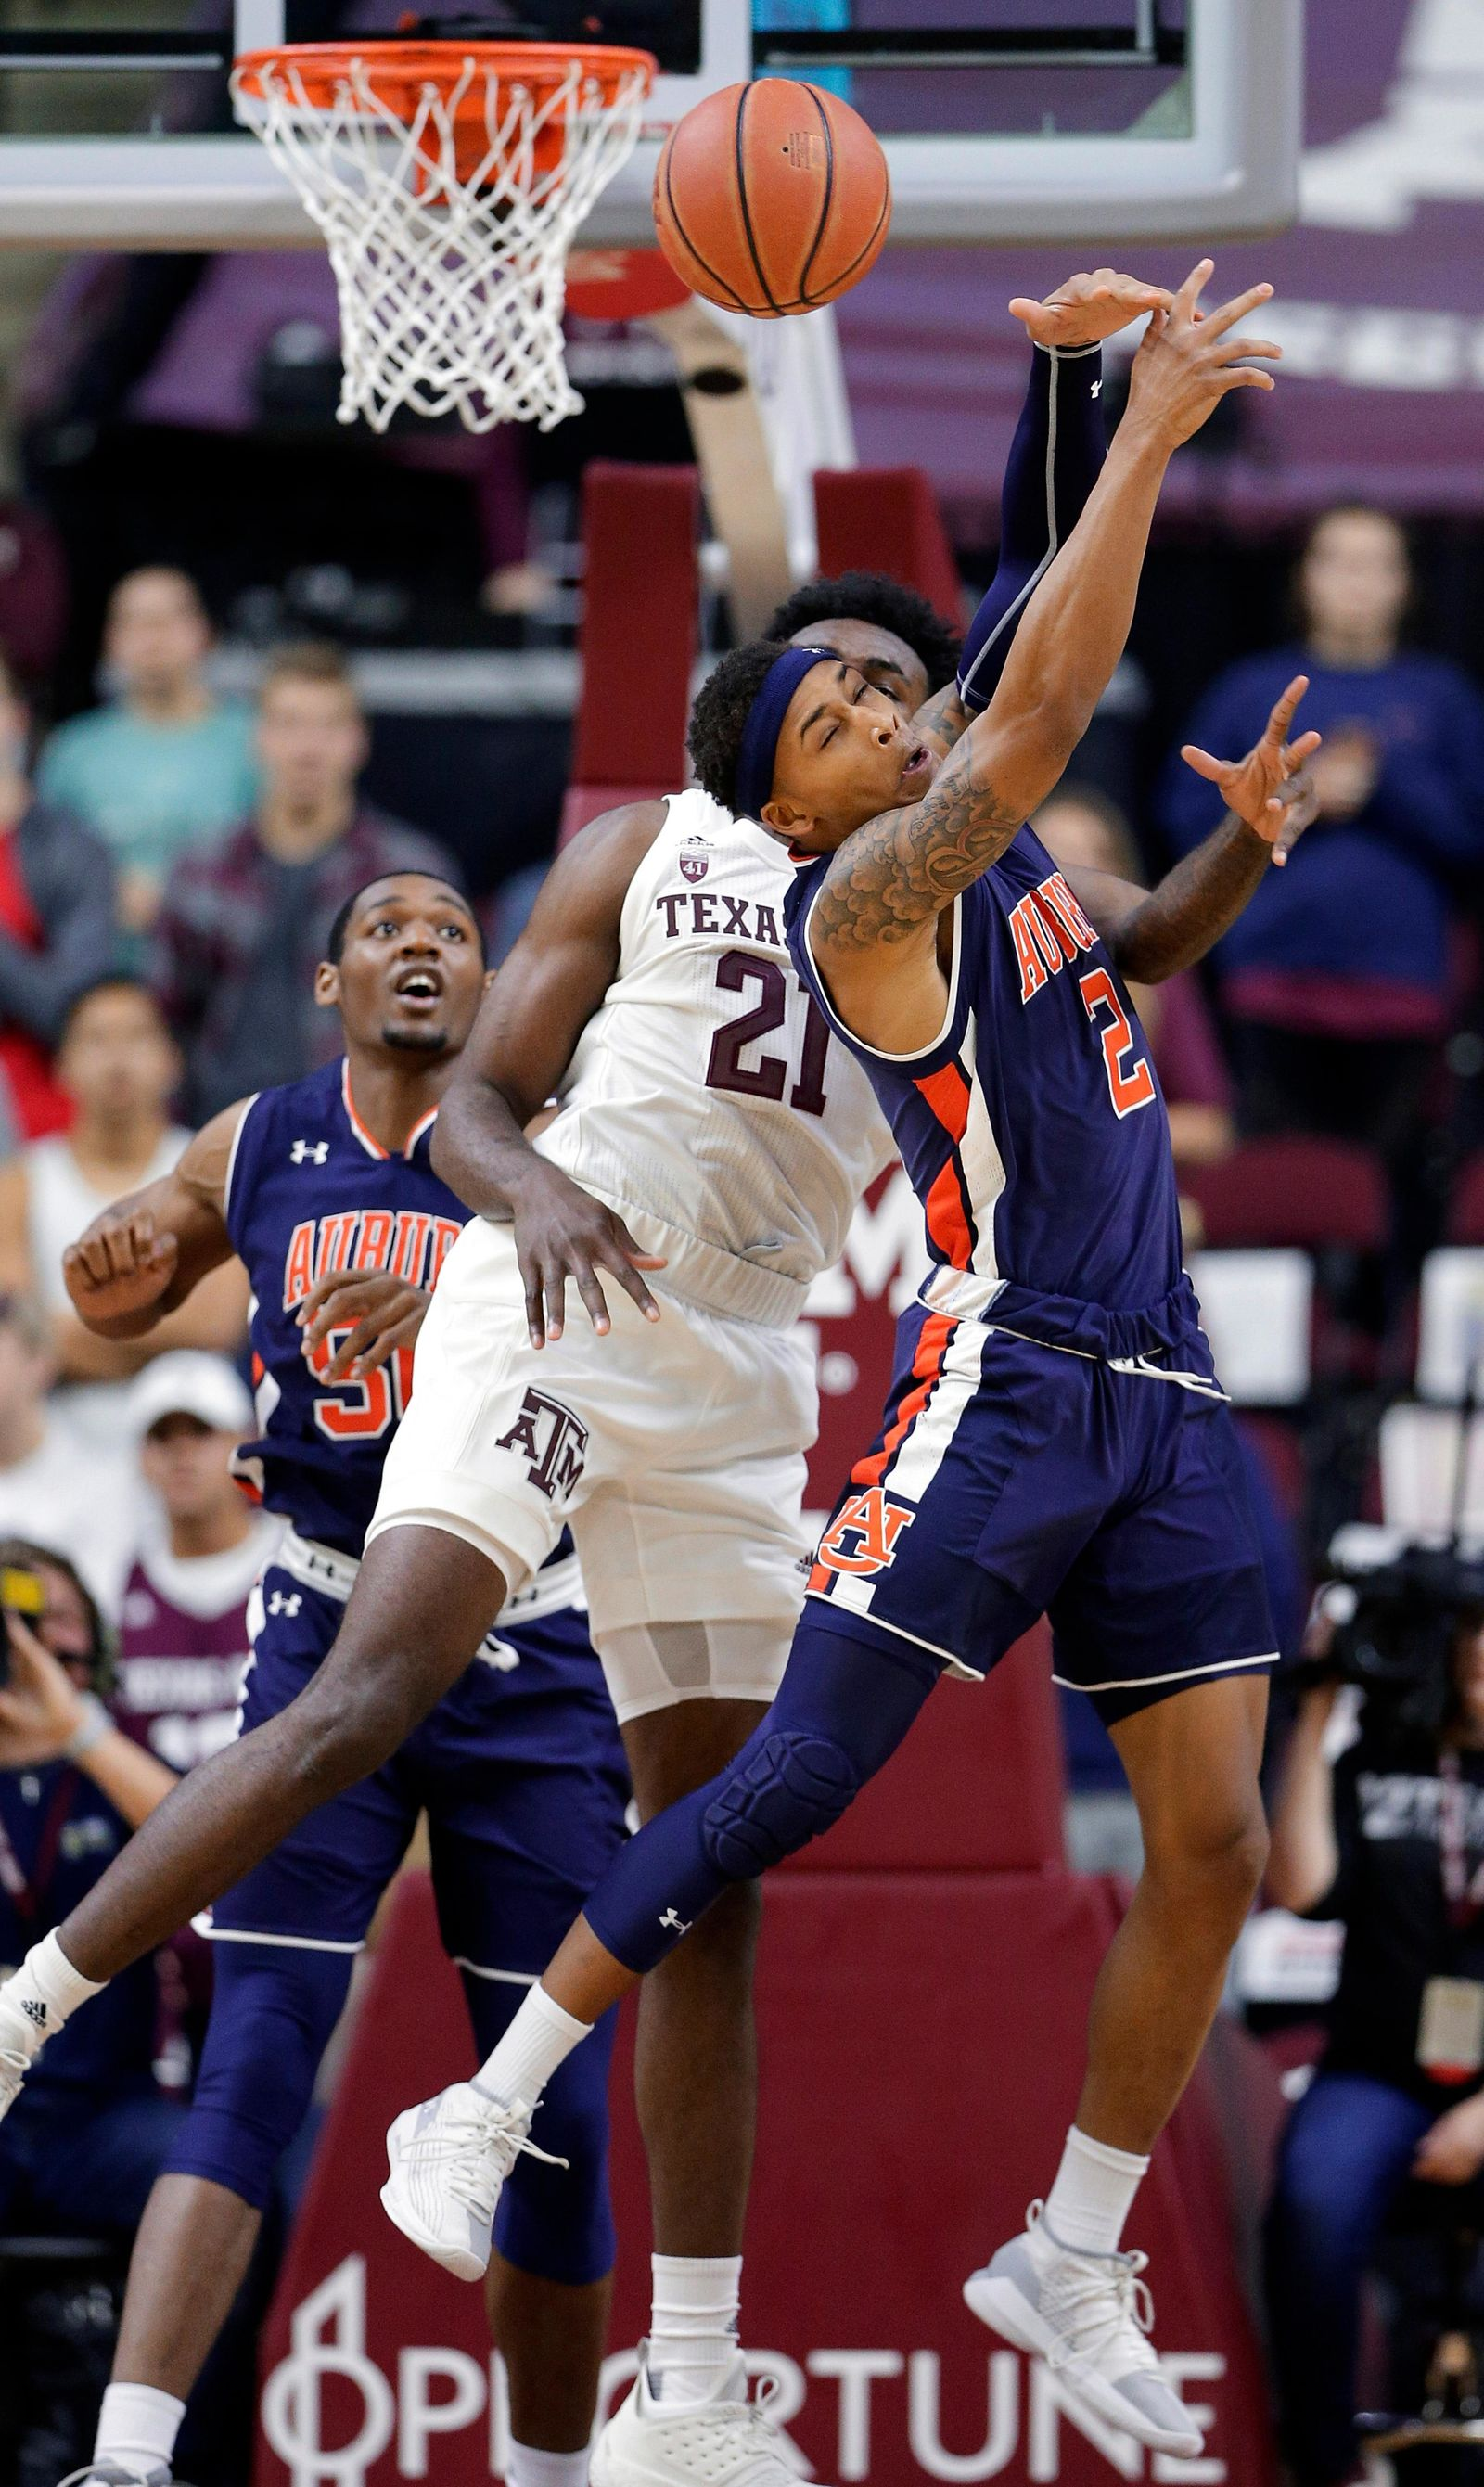 Auburn guard Bryce Brown (2) loses a rebound in front of Texas A&M forward Christian Mekowulu (21) as Auburn center Austin Wiley, back, looks on during the first half of an NCAA college basketball game, Wednesday, Jan. 16, 2019, in College Station, Texas. (AP Photo/Michael Wyke)